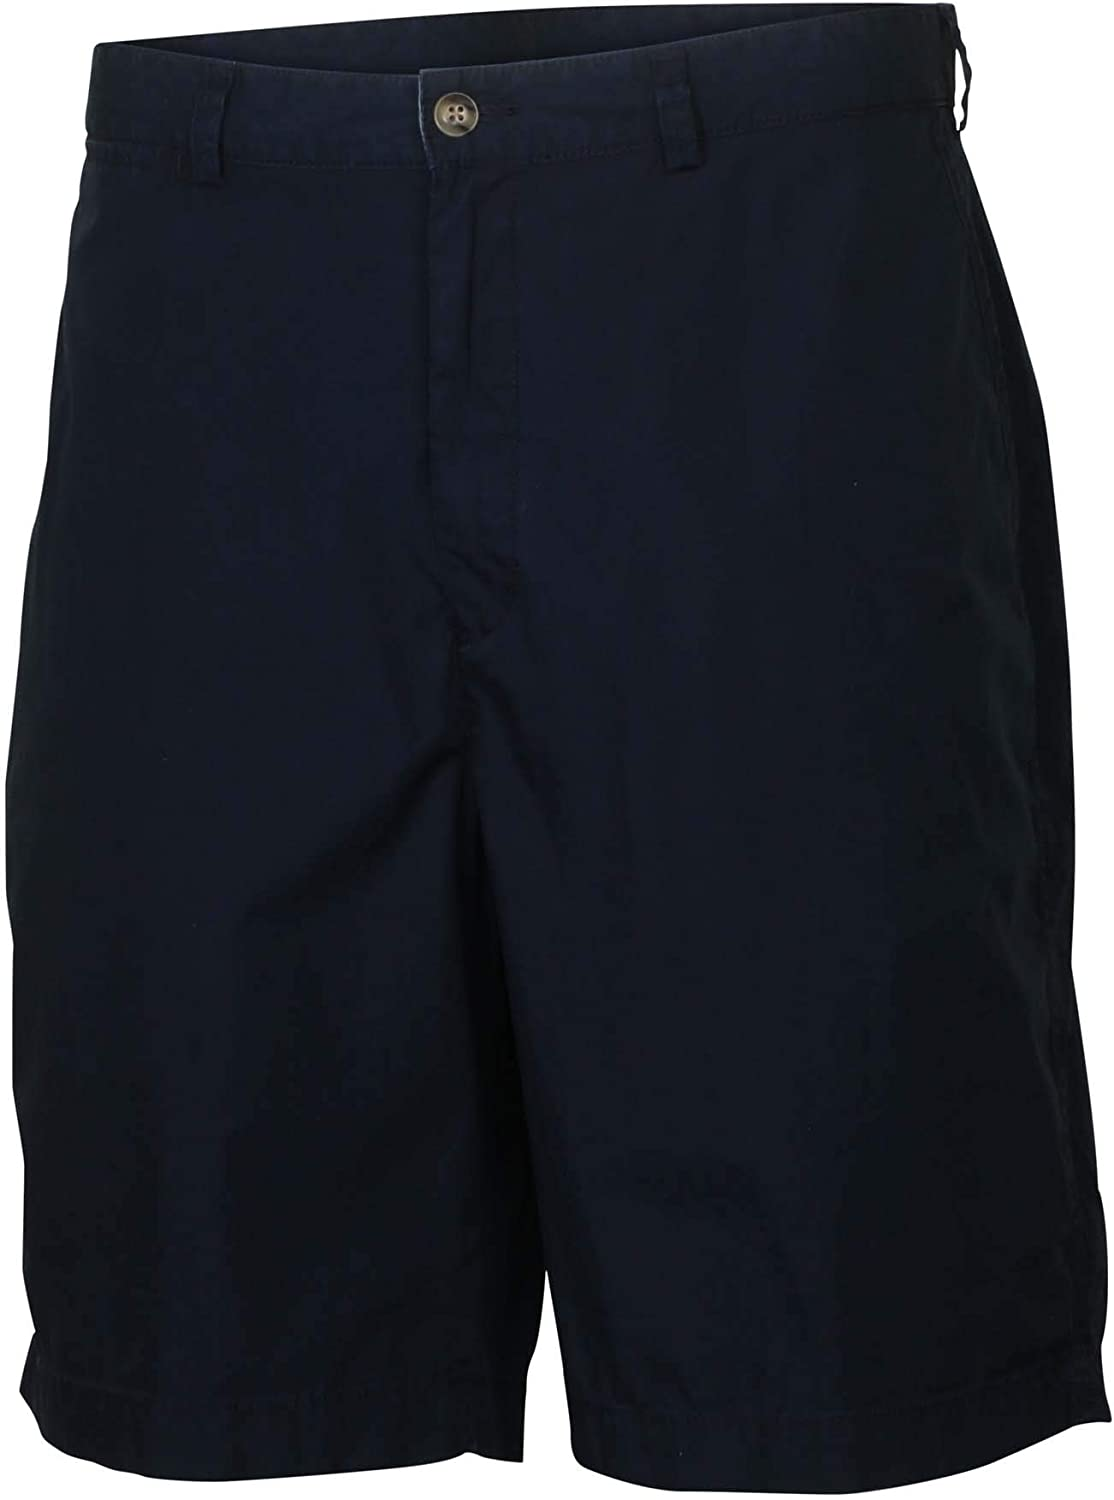 Polo RL Men's Limited time for free shipping Flat Front Cuffed Chino Pony Max 86% OFF Shorts